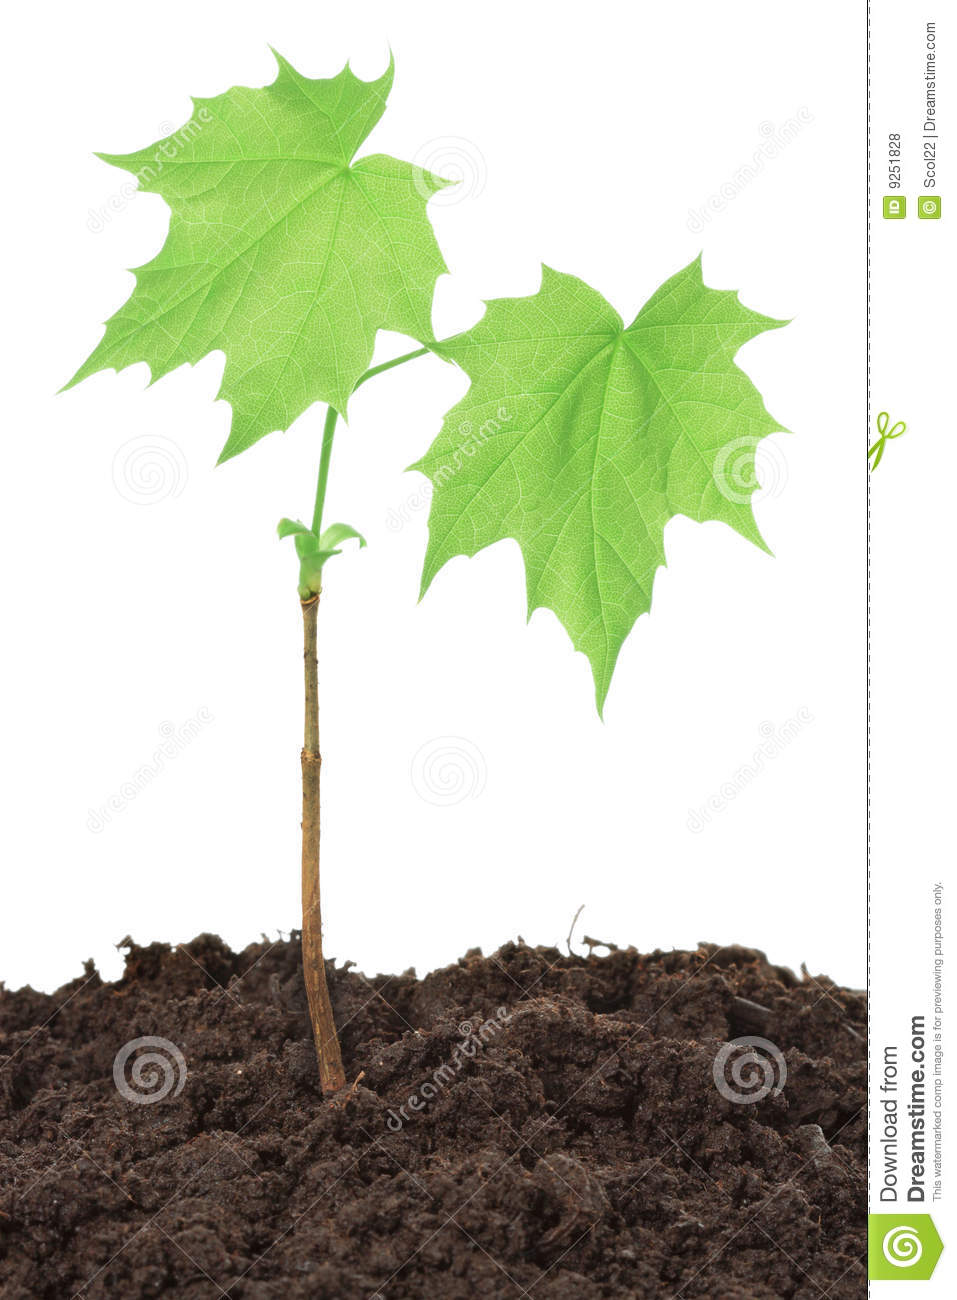 Maple Seedling Royalty Free Stock Photos Image 9251828